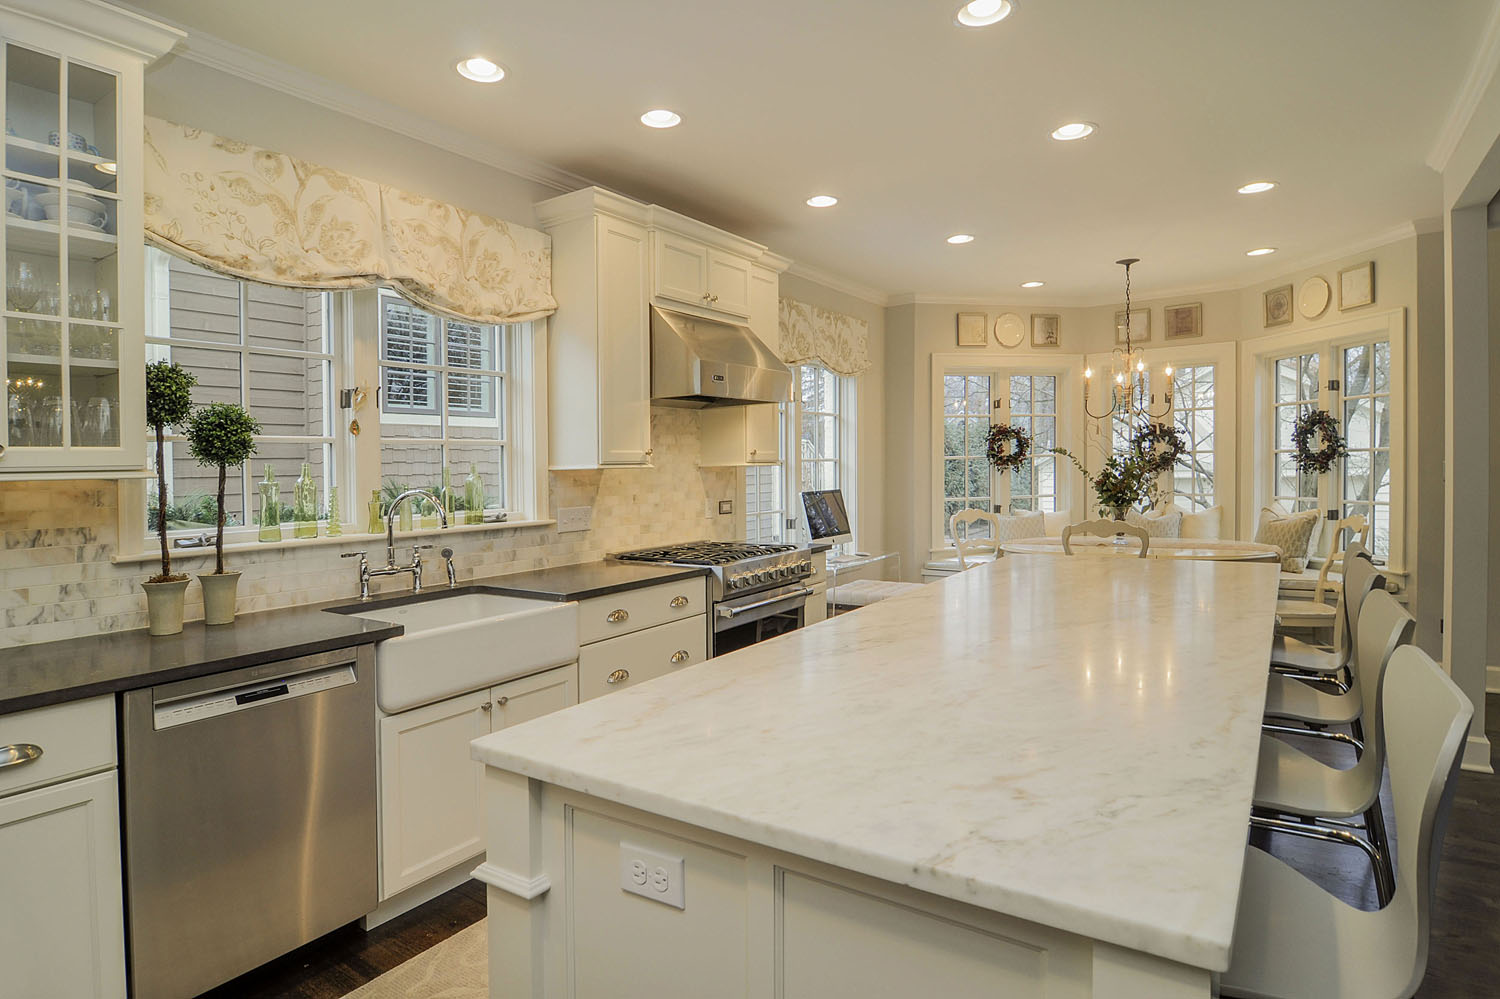 Ben & Ellen's Kitchen Remodel Pictures | Home Remodeling ... on Kitchen Remodel Ideas  id=72414